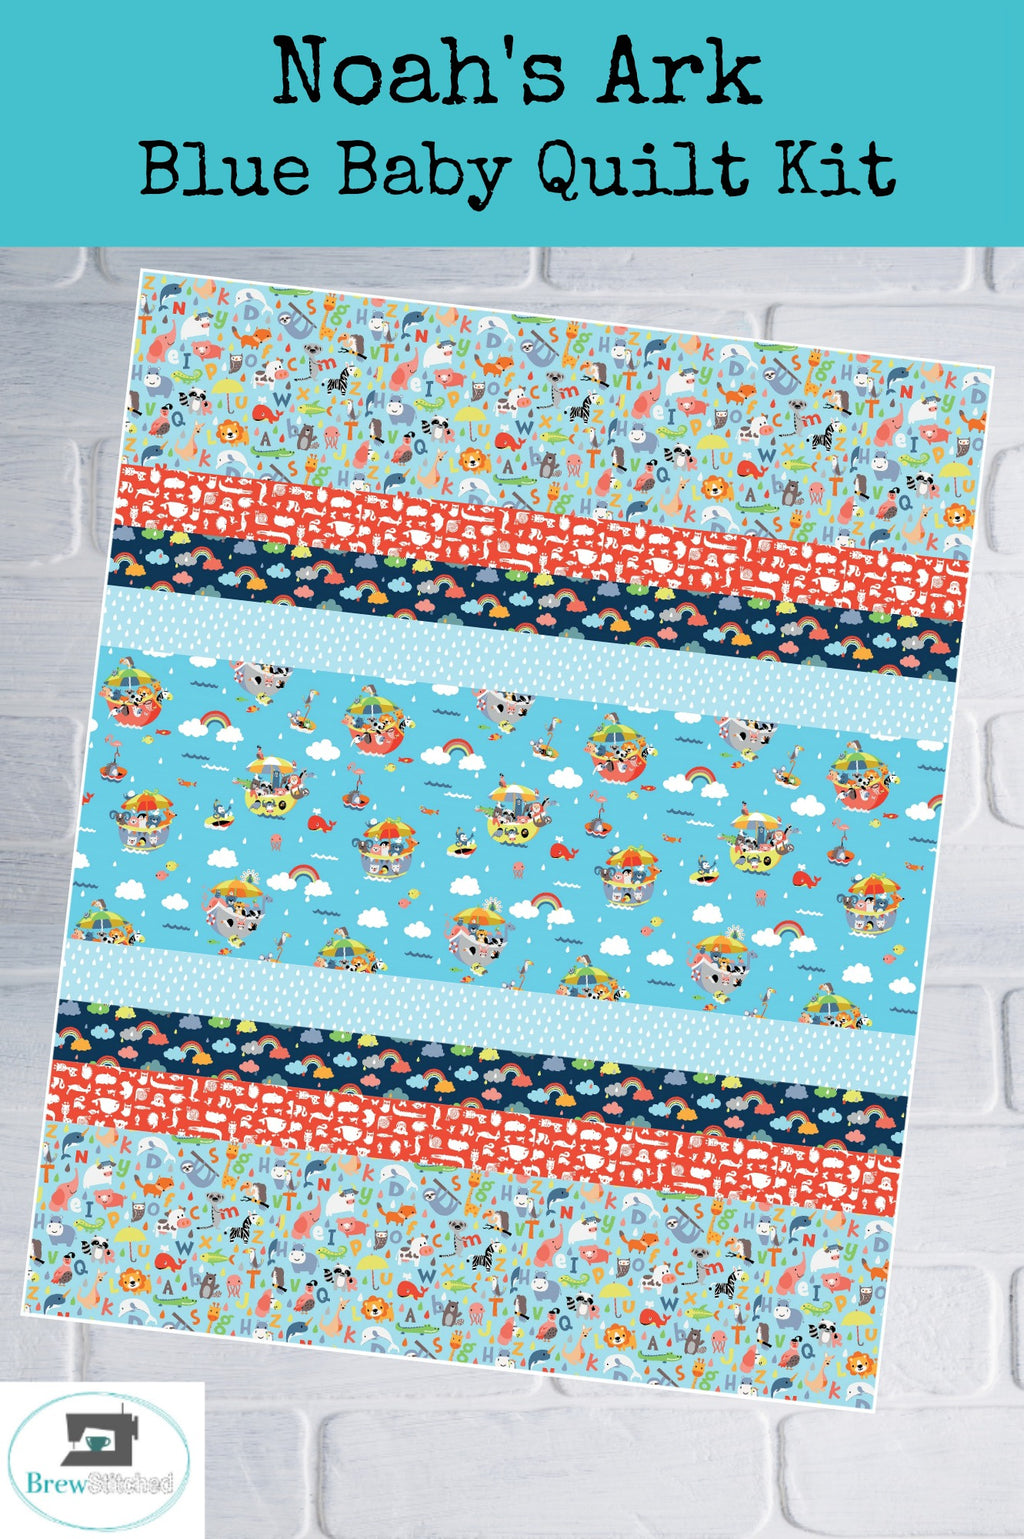 Noah's Ark Baby Quilt Kit in Blue - brewstitched.com